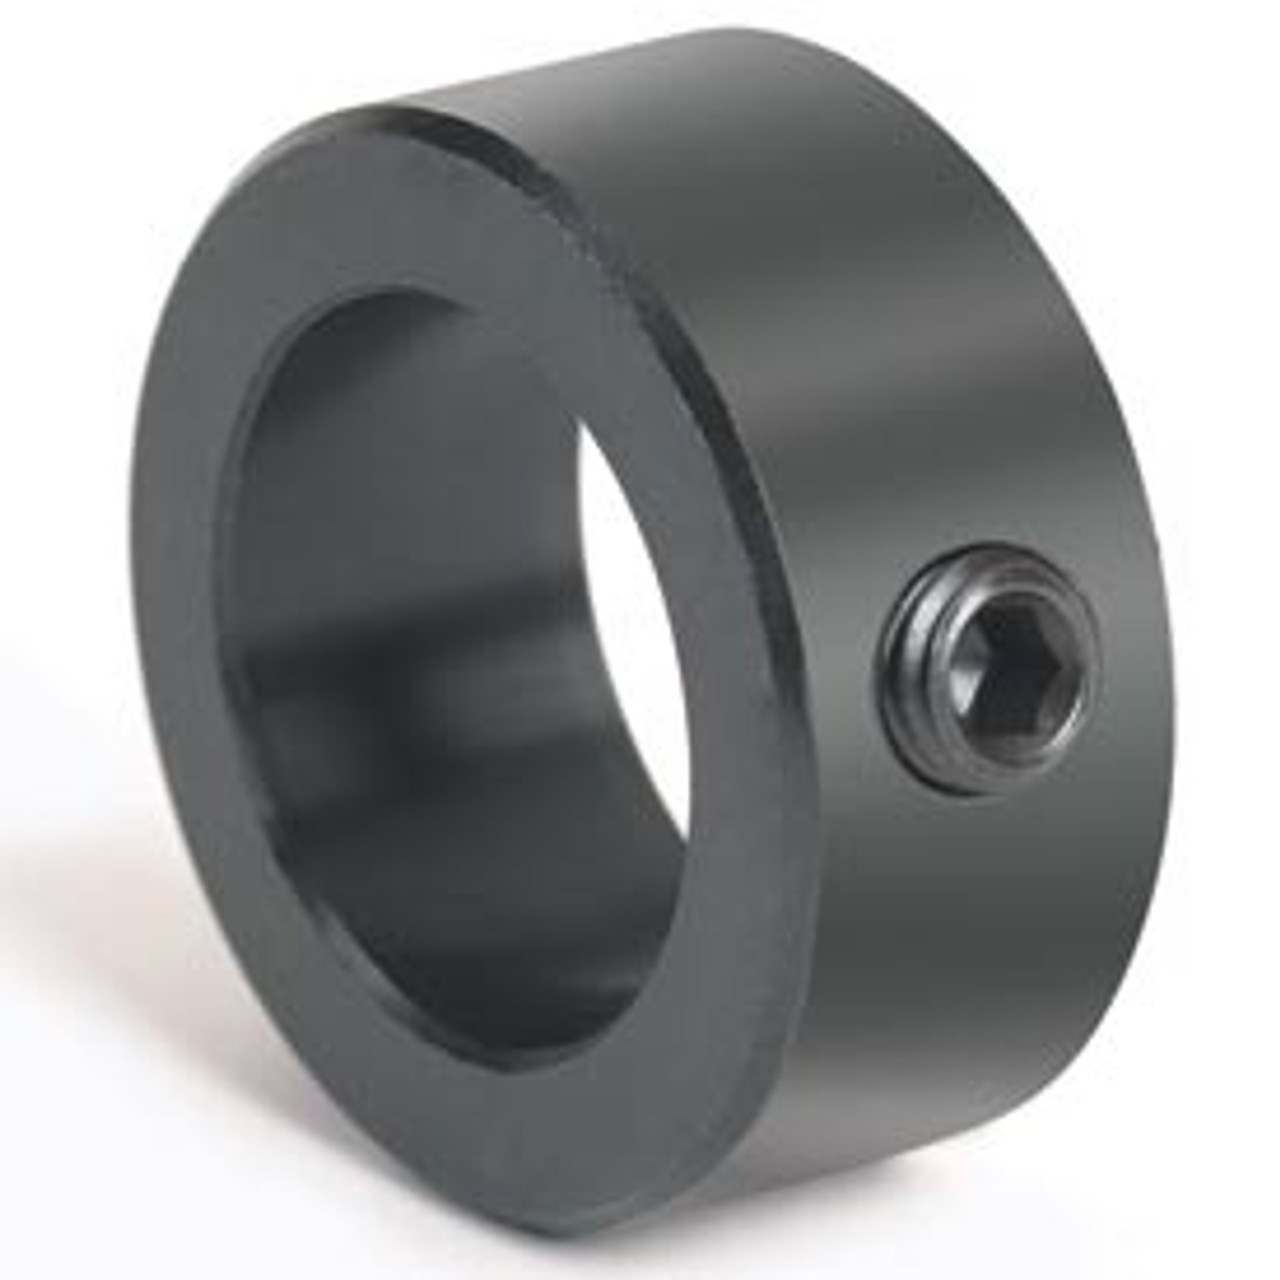 P/N VLE1155: 0039 Steering Shaft Collar